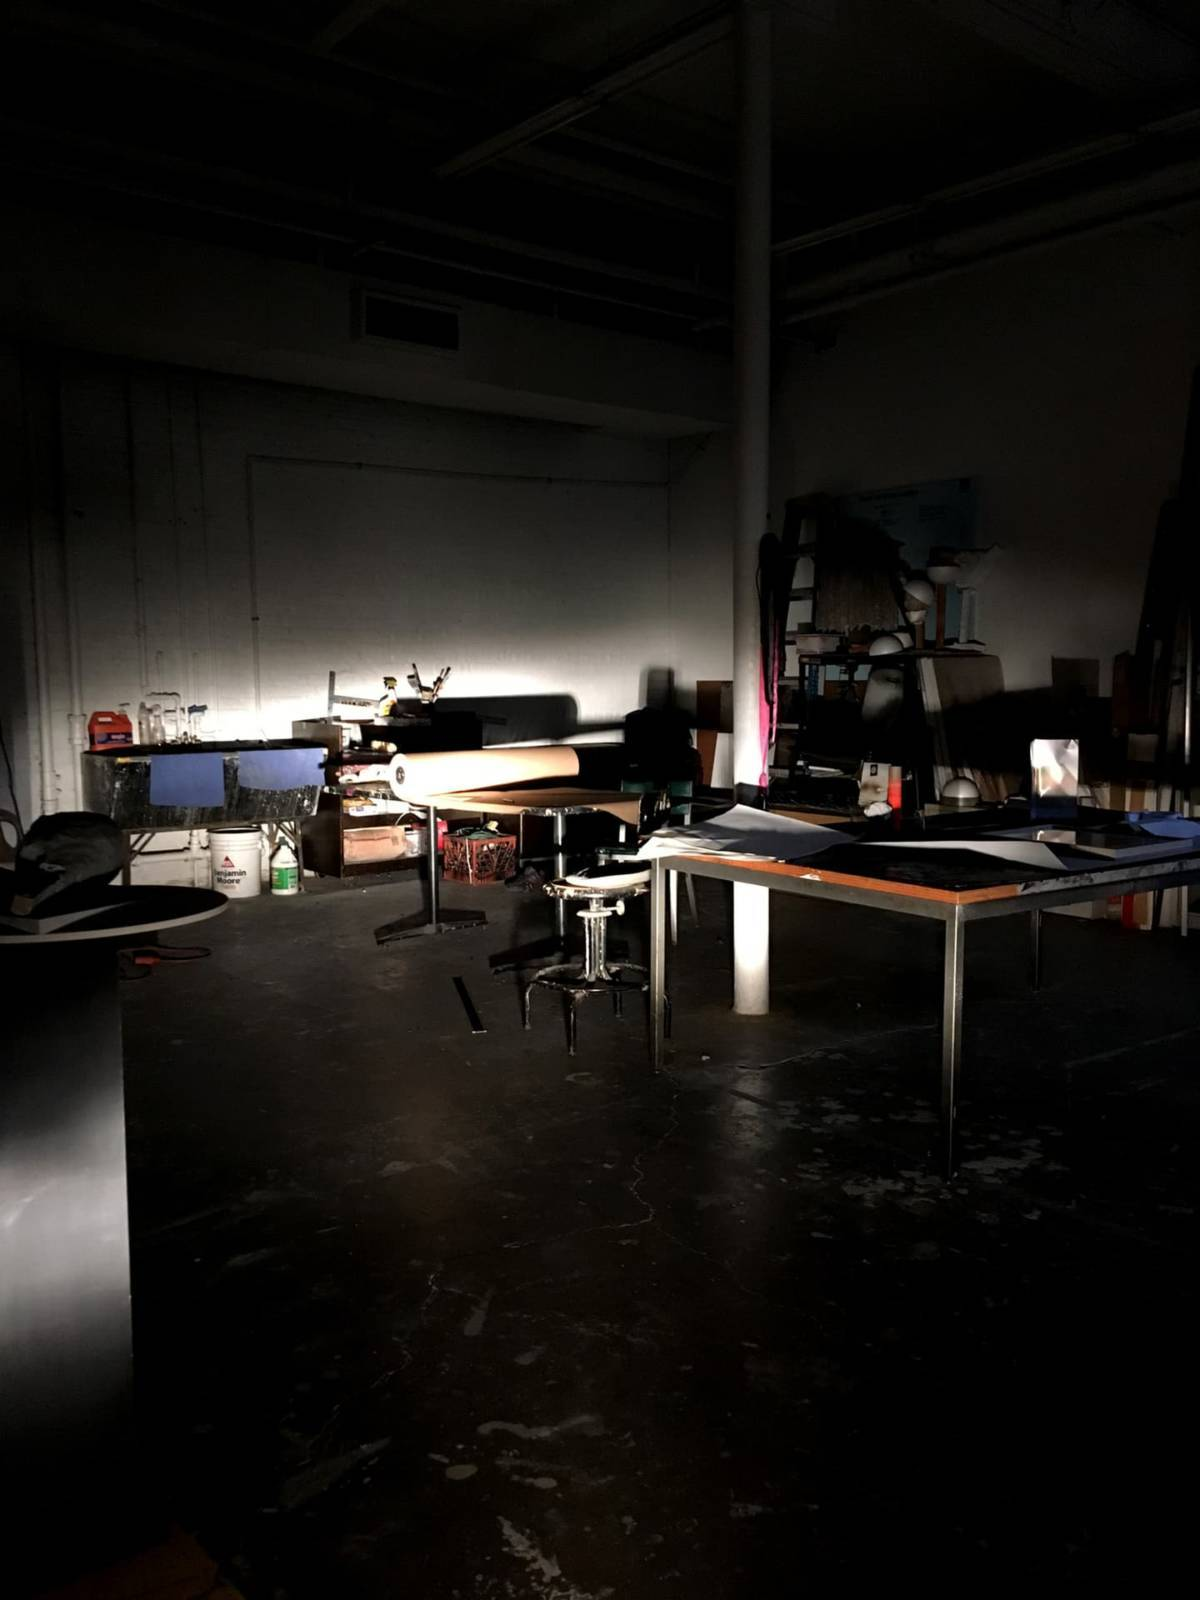 Studio at Night, fall 2018